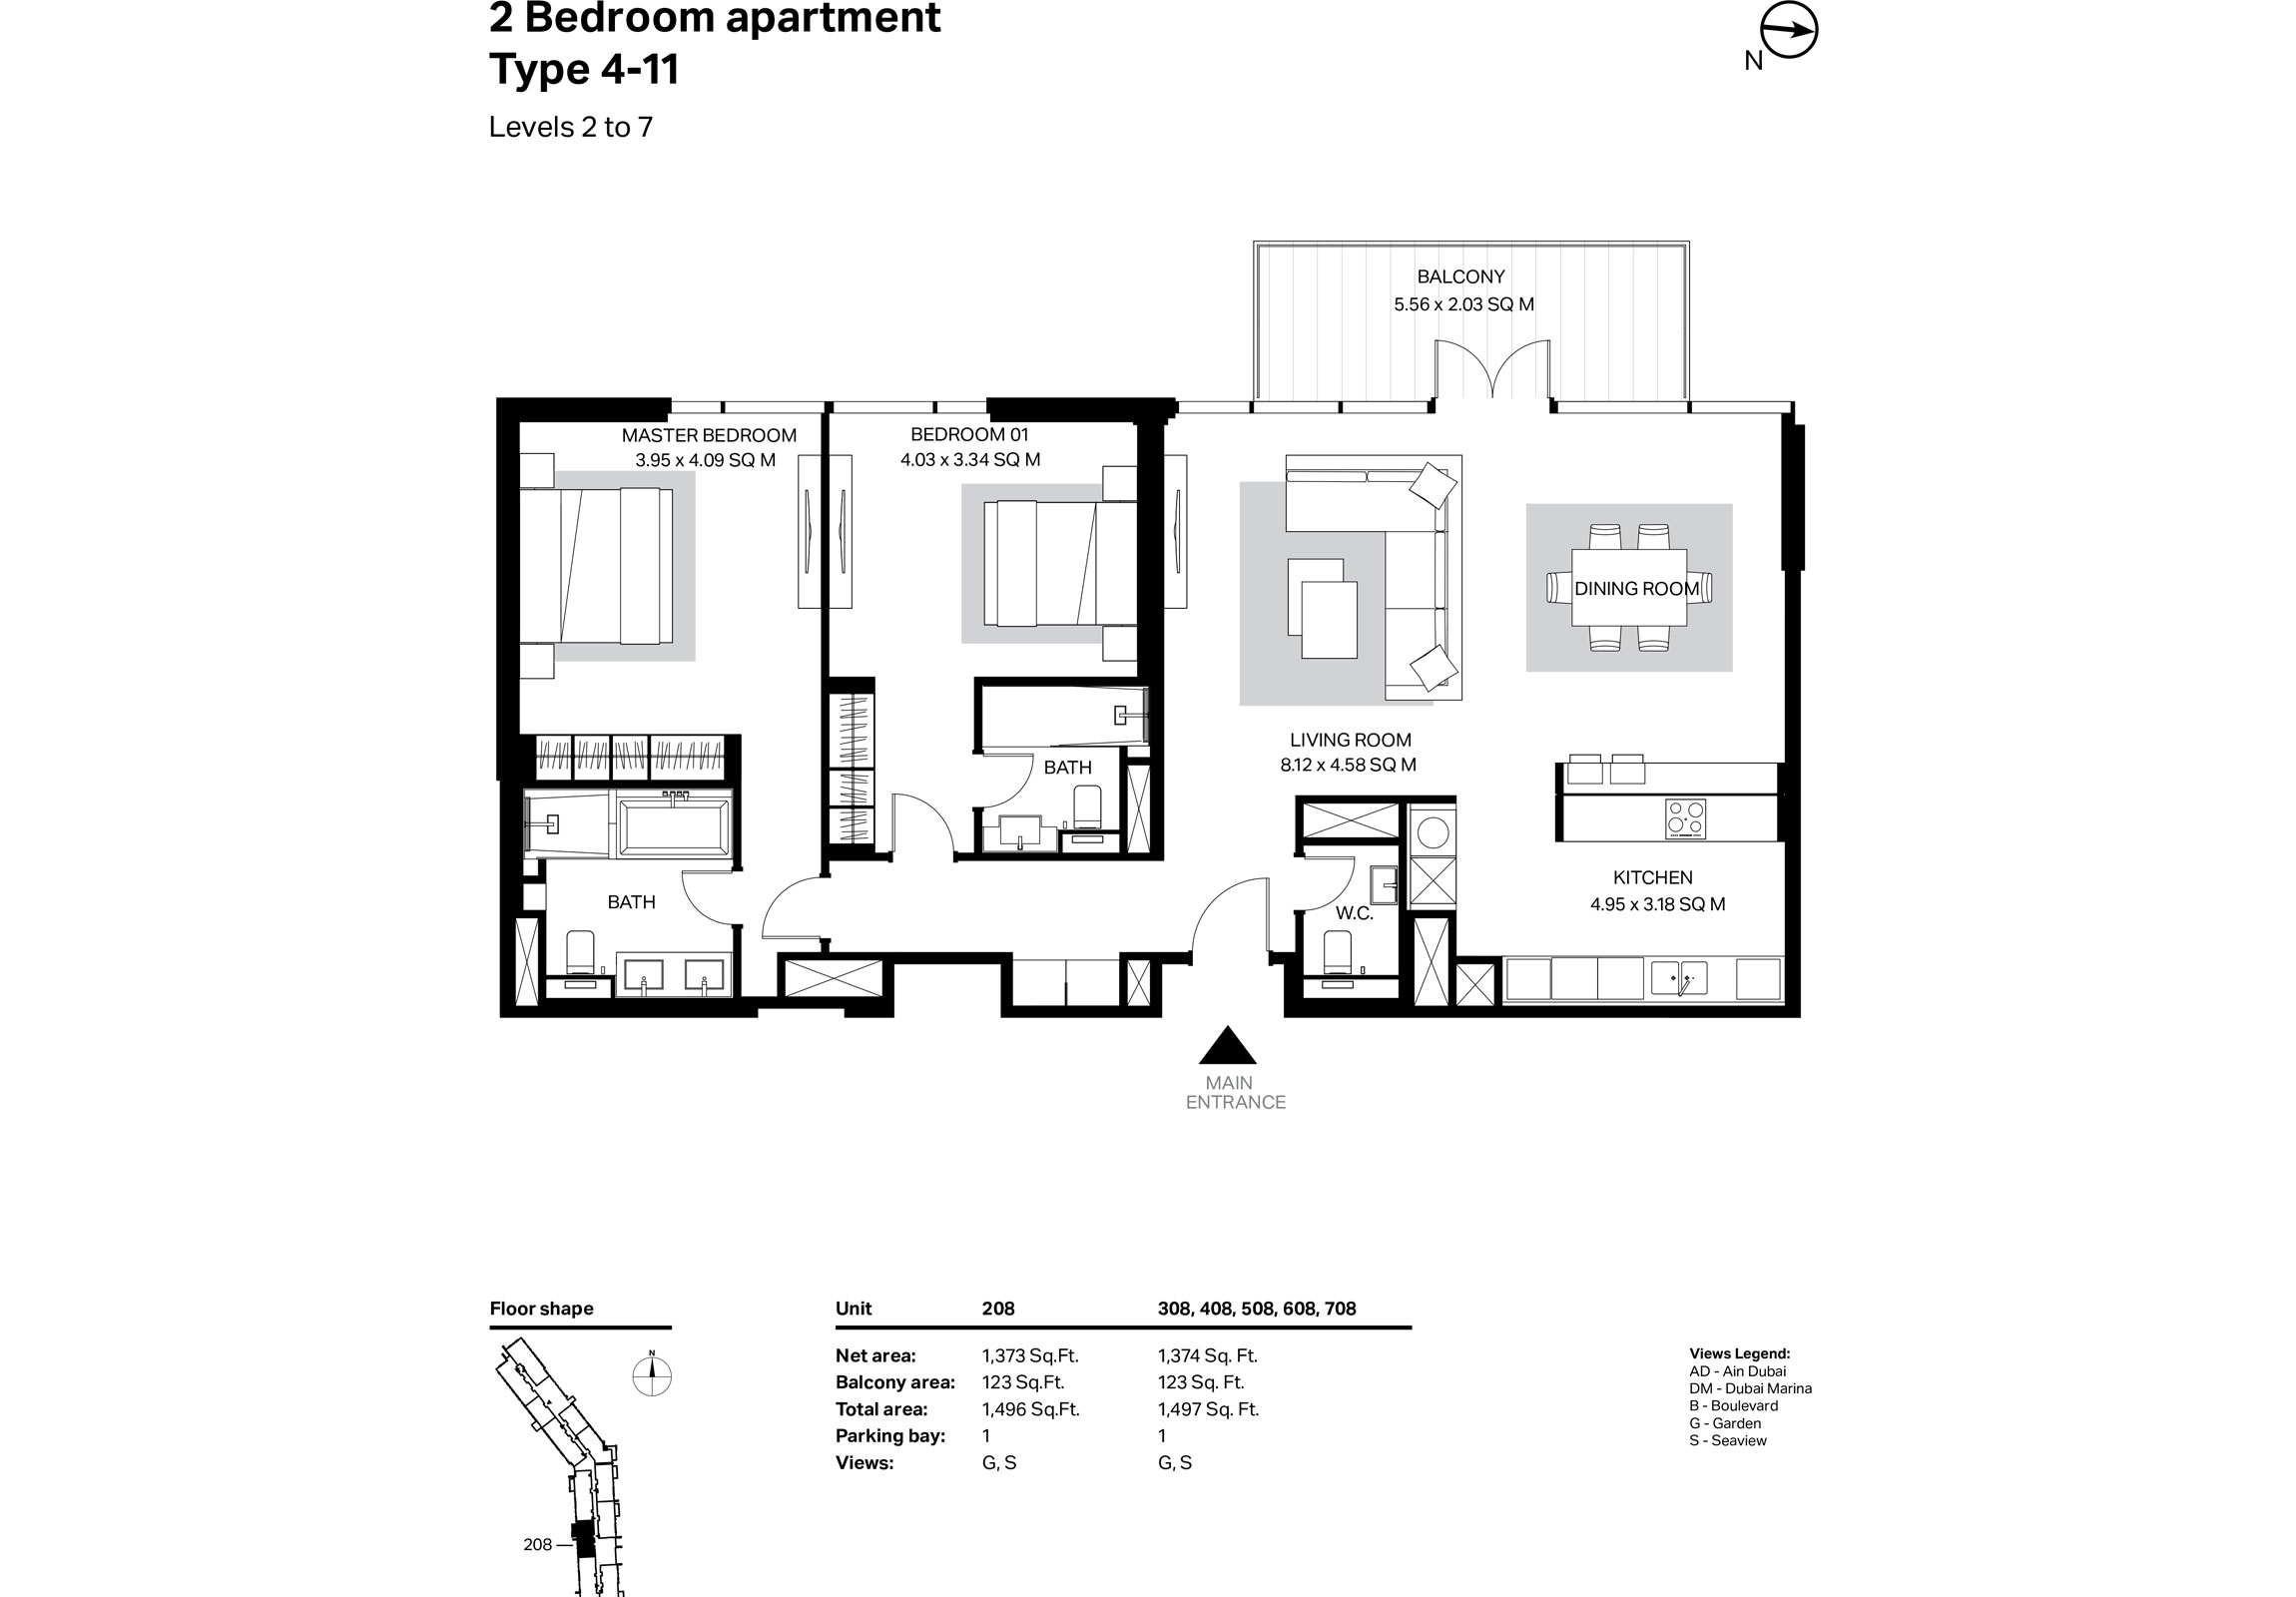 Building 2 - 2 Bedroom Type 4-11 Level 2 To 7 Size 1497    sq. ft.